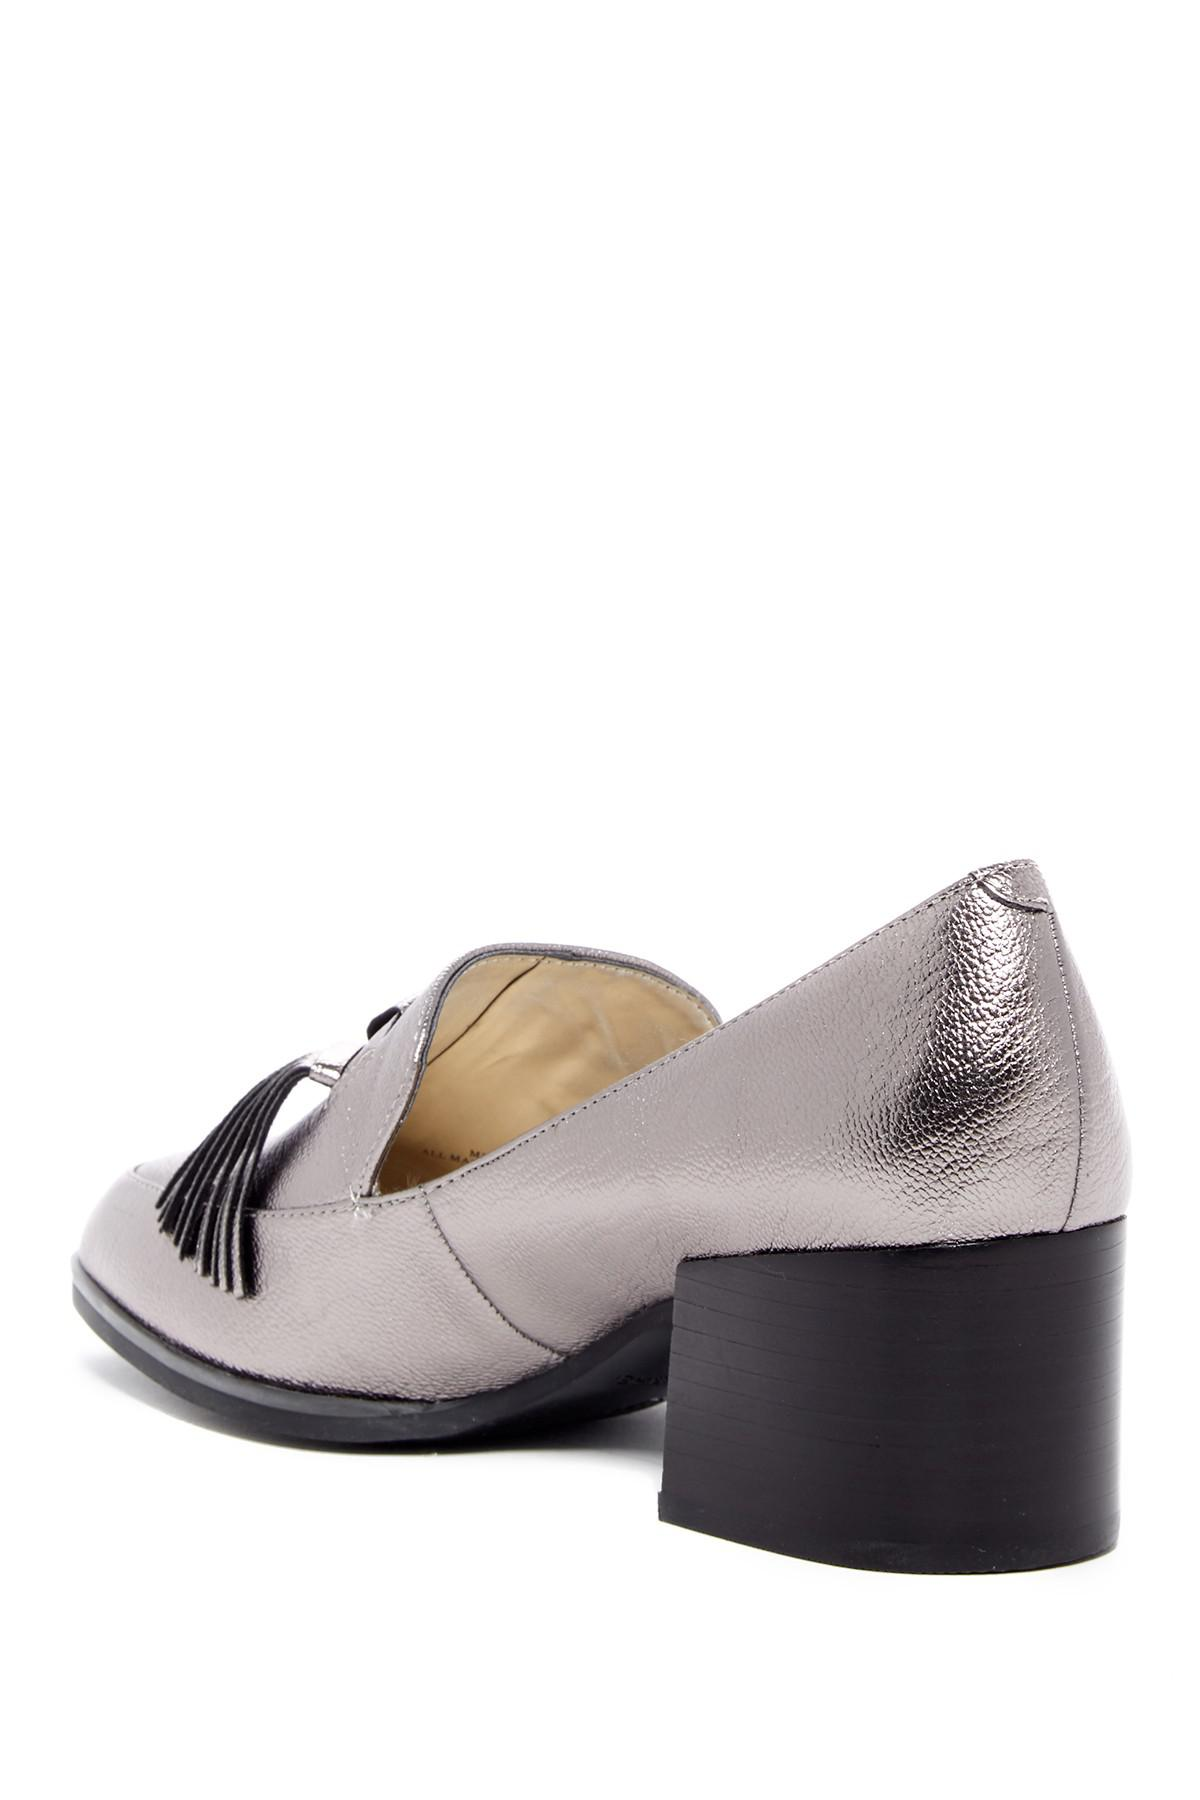 a5a3622e6f0 Lyst - Marc Fisher Phylicia Block Heel Loafer in Gray